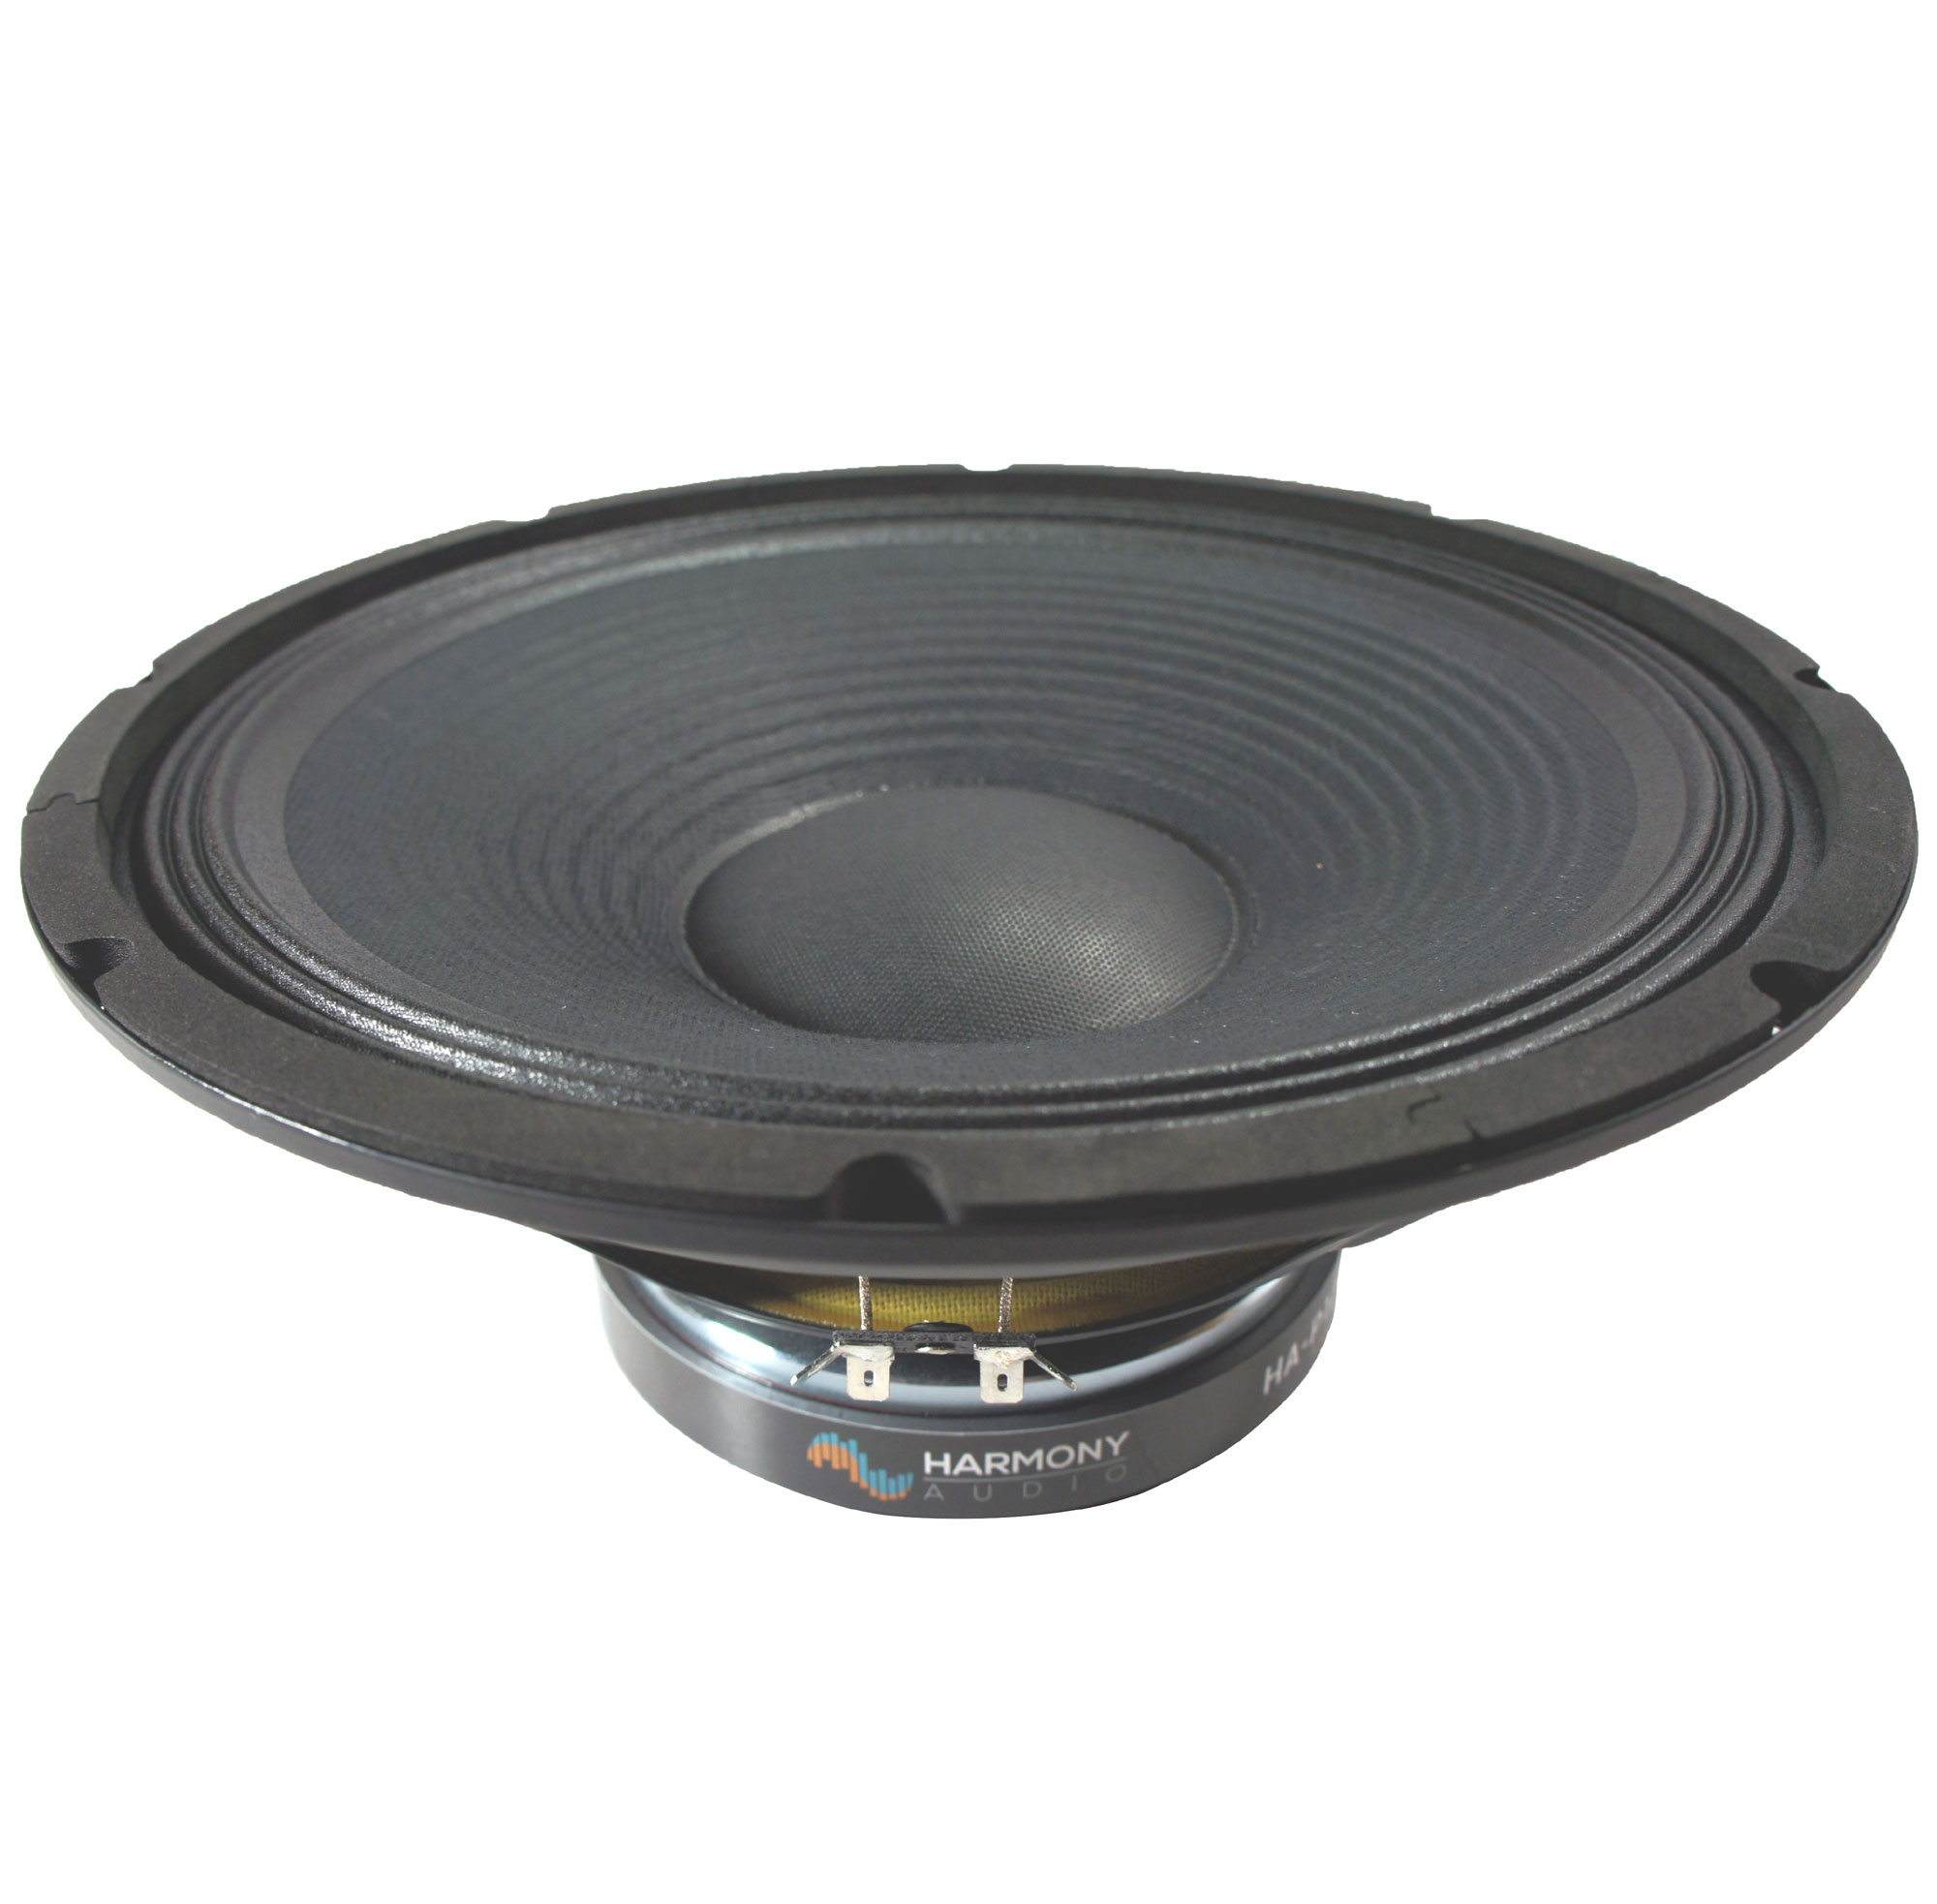 "Harmony HA-P12WS8 Replacement 12"" Pro PA Speaker Woofer for Behringer B112MP3"